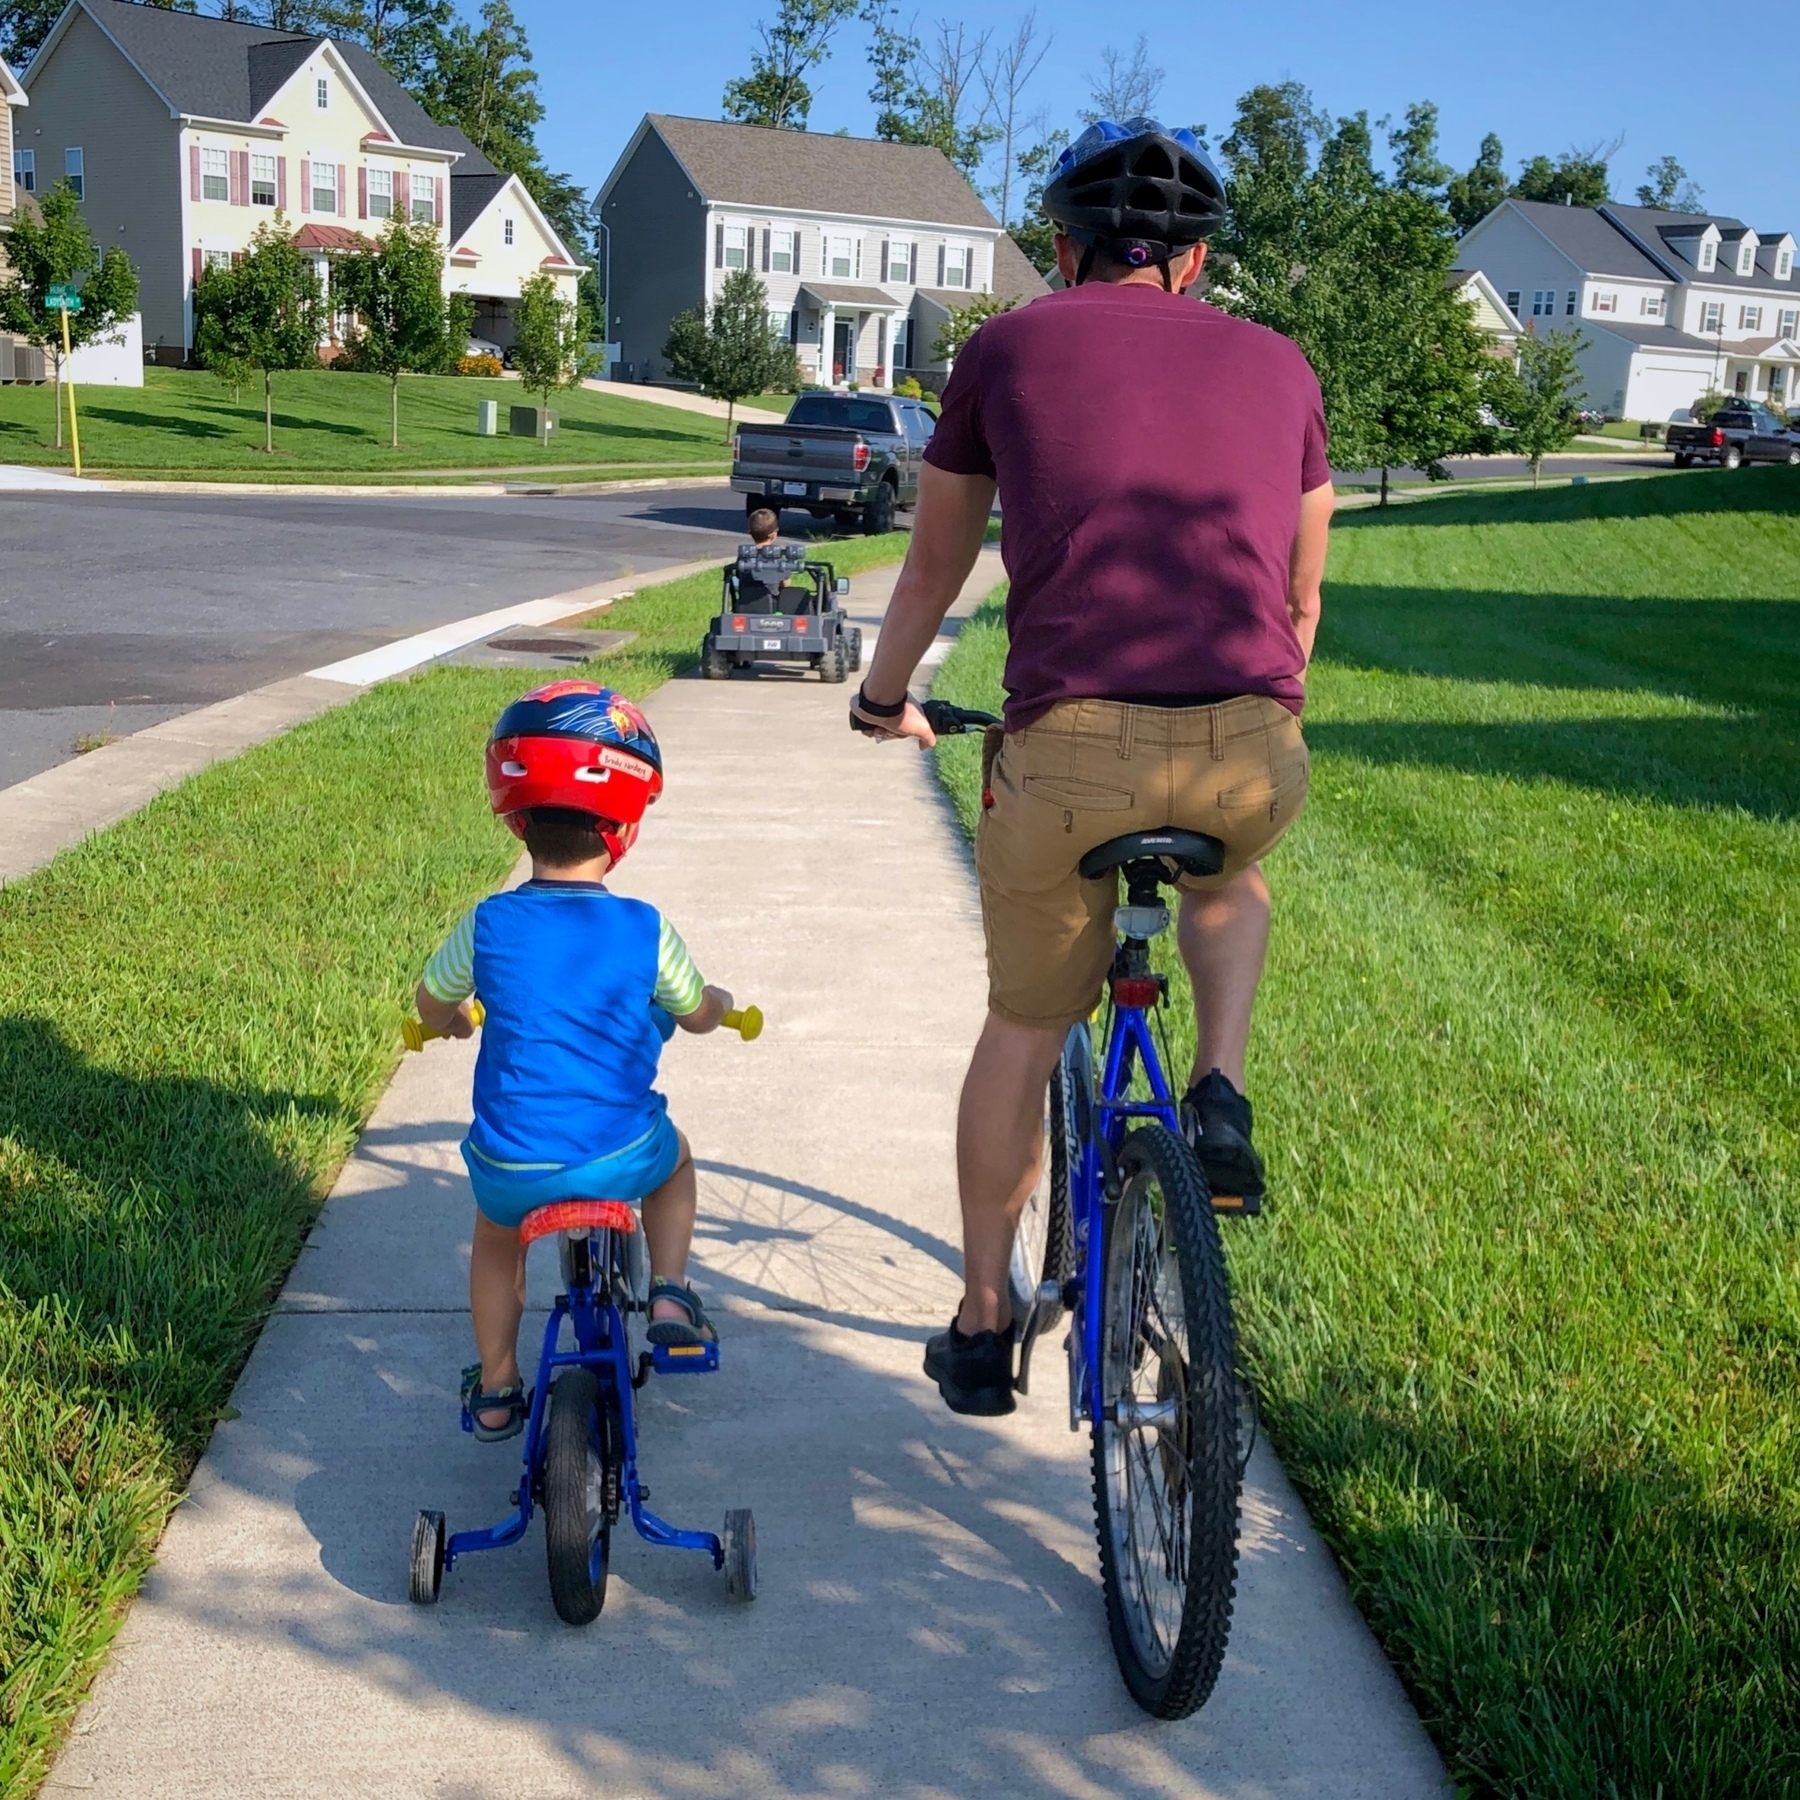 a boy and a man riding bikes beside each other